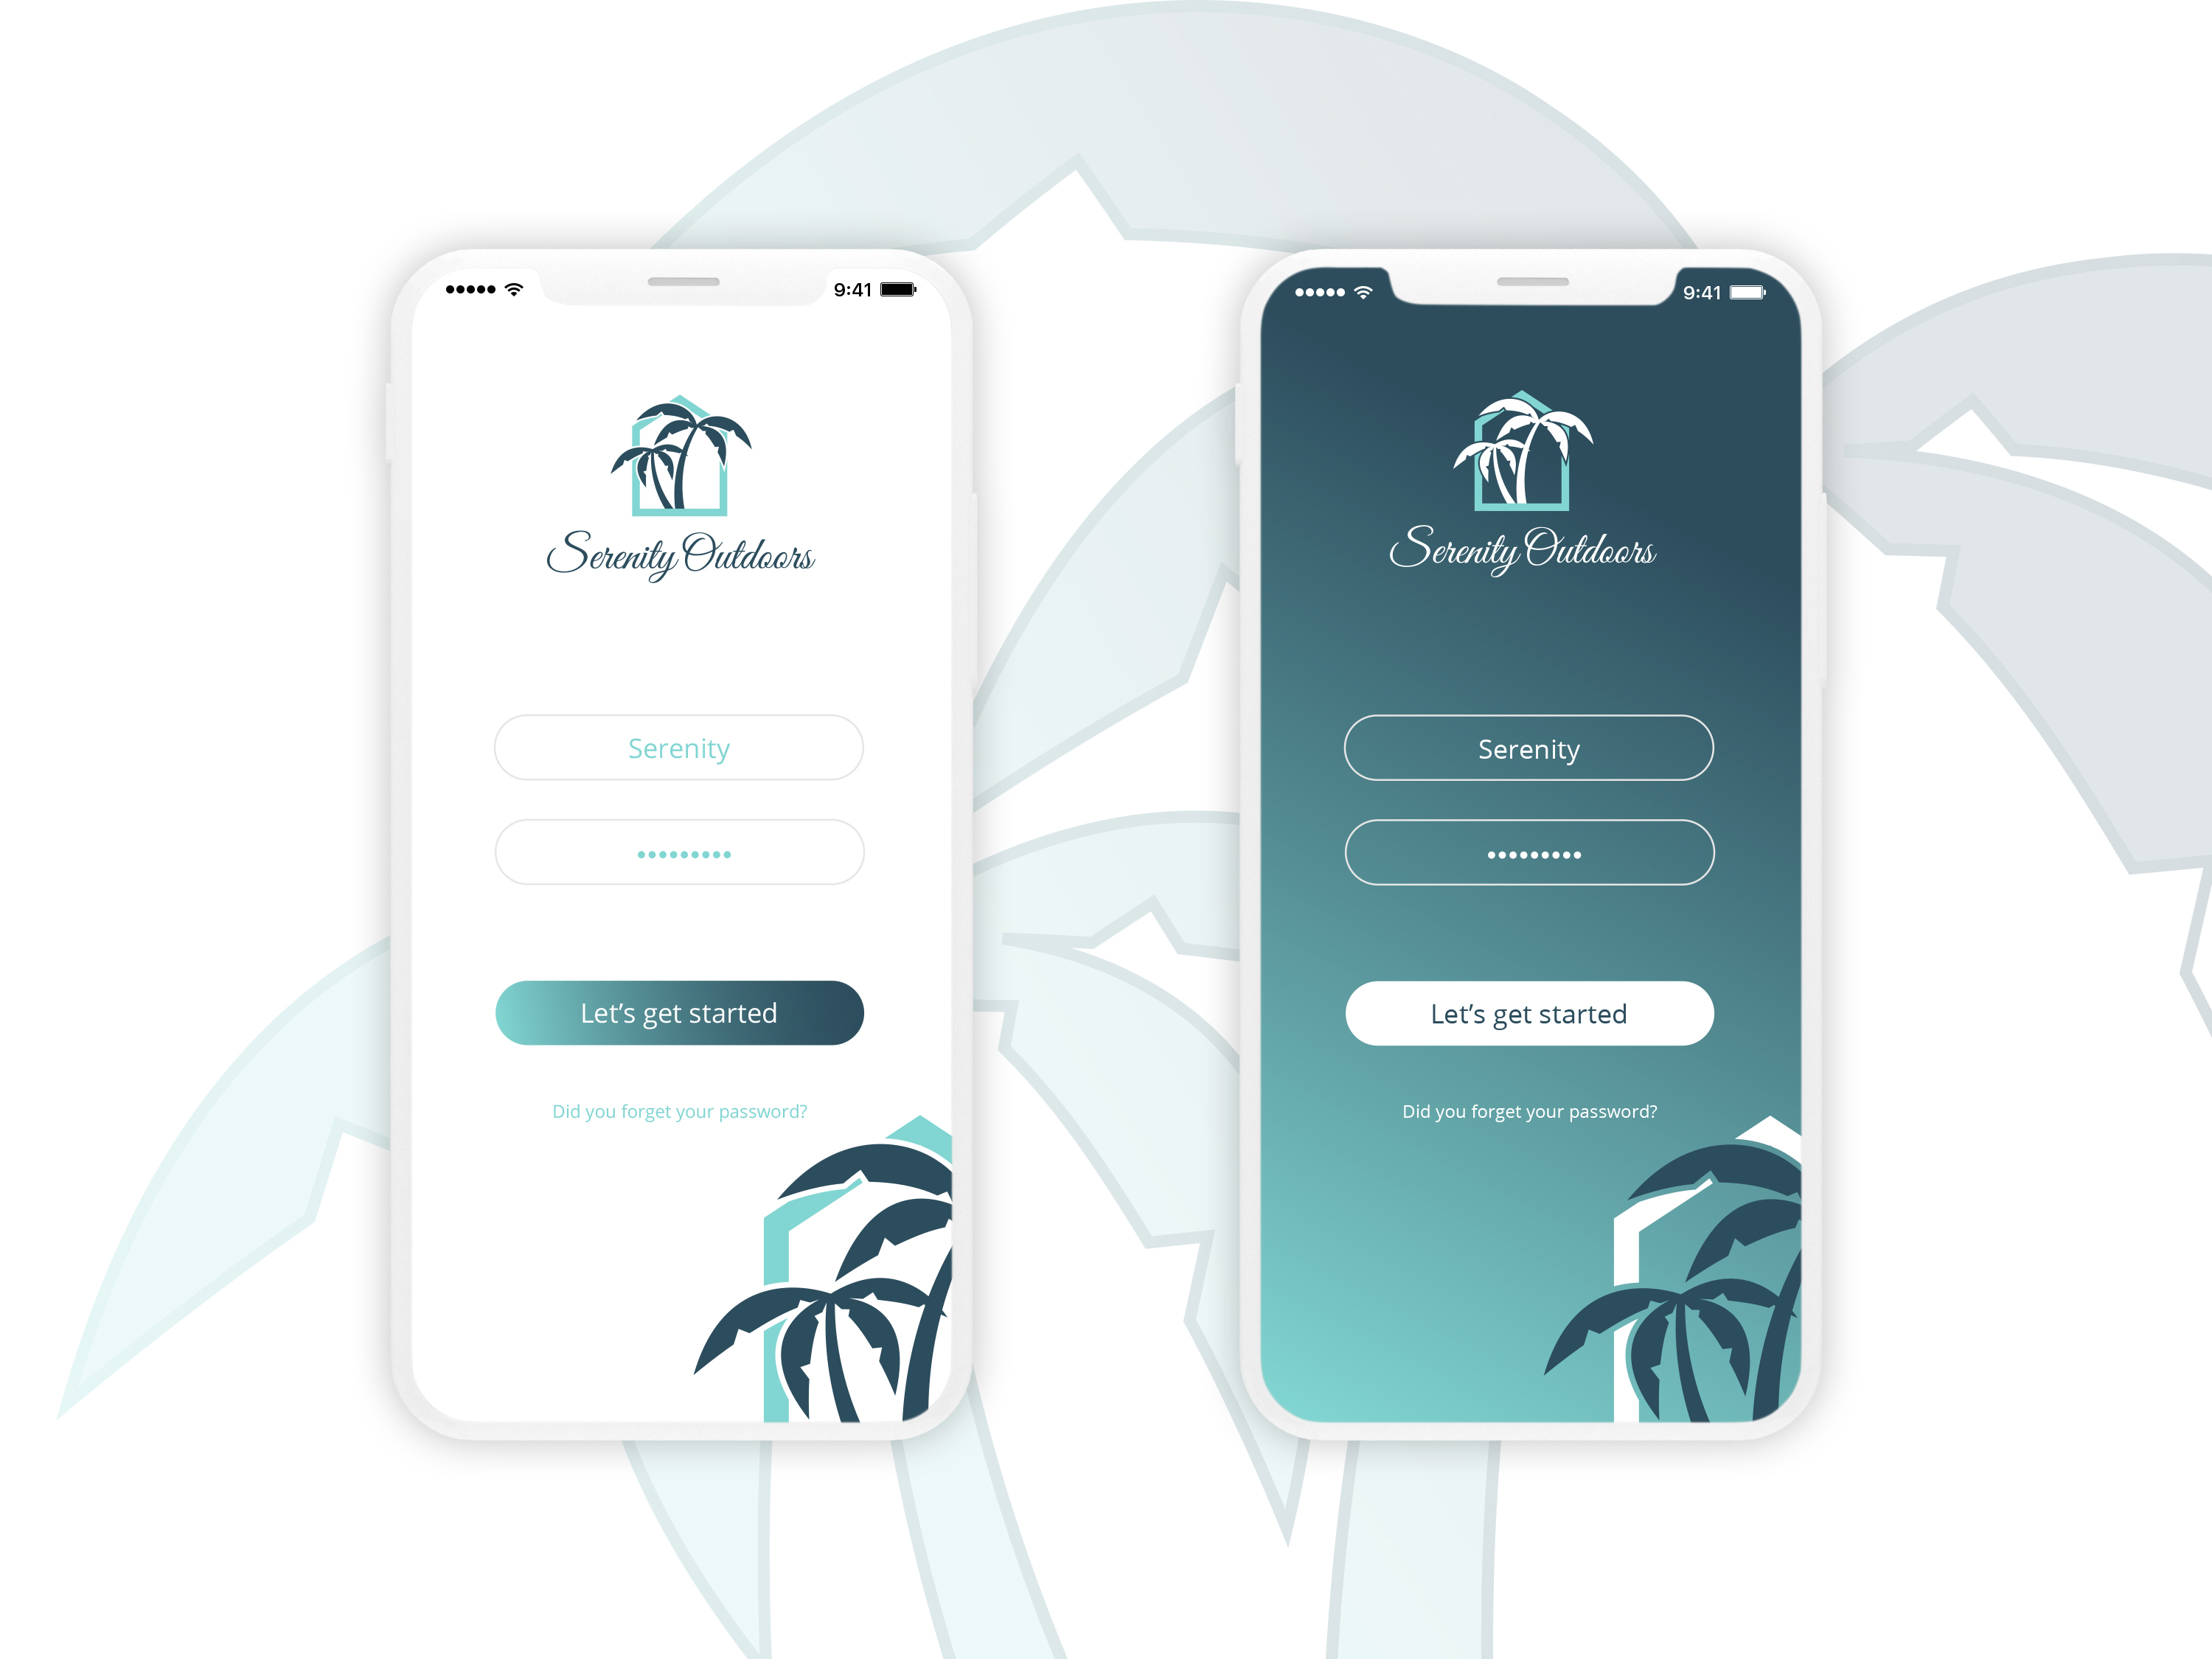 App splash screen design